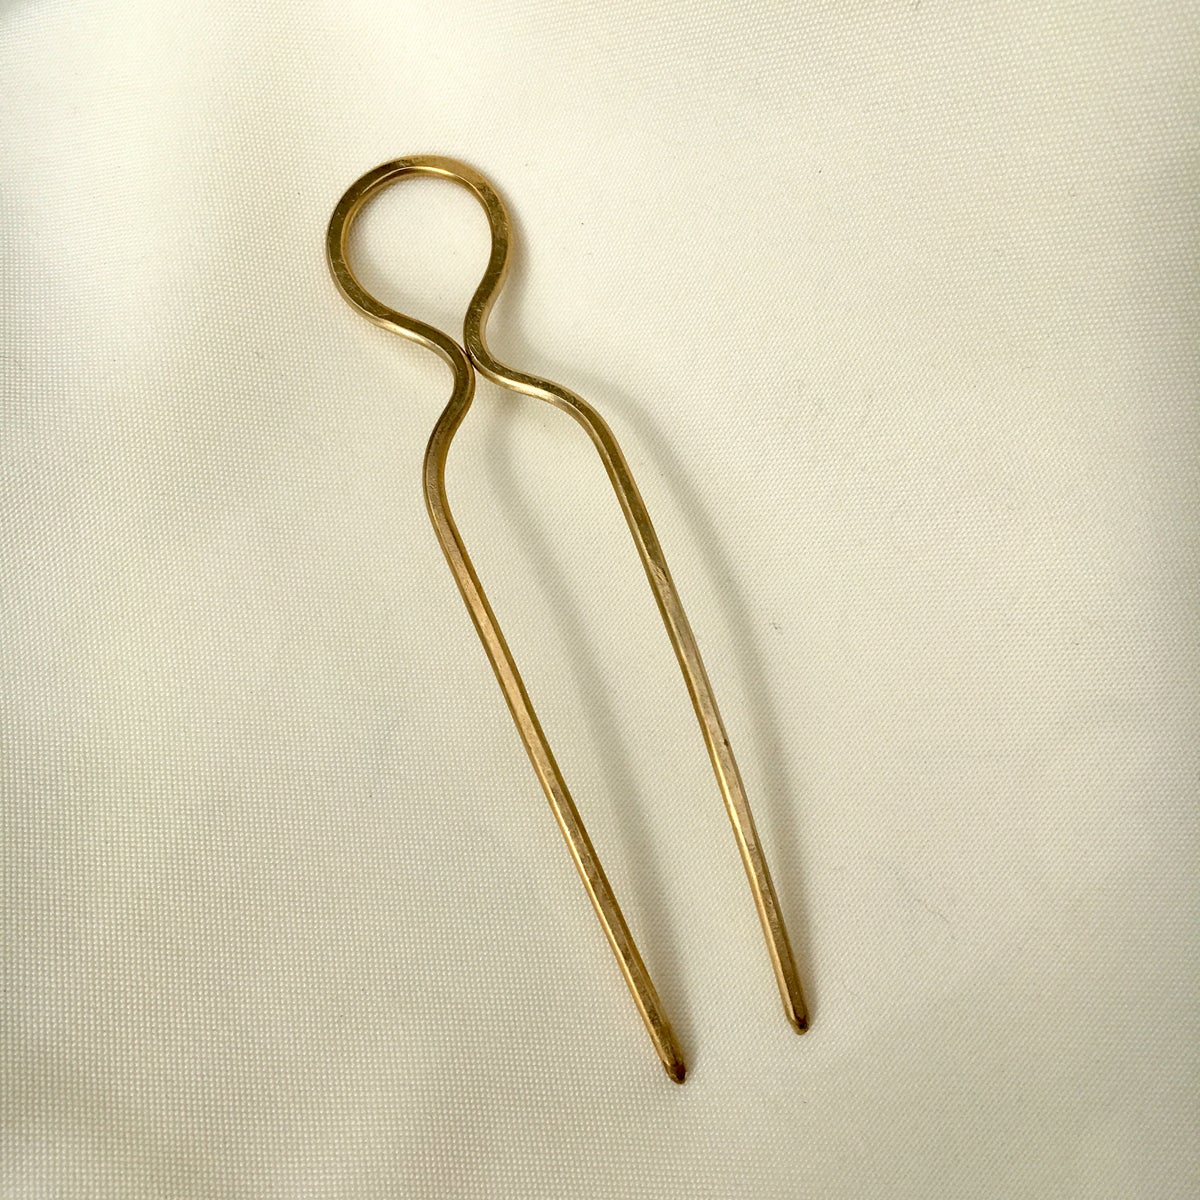 Image of loop hair pin